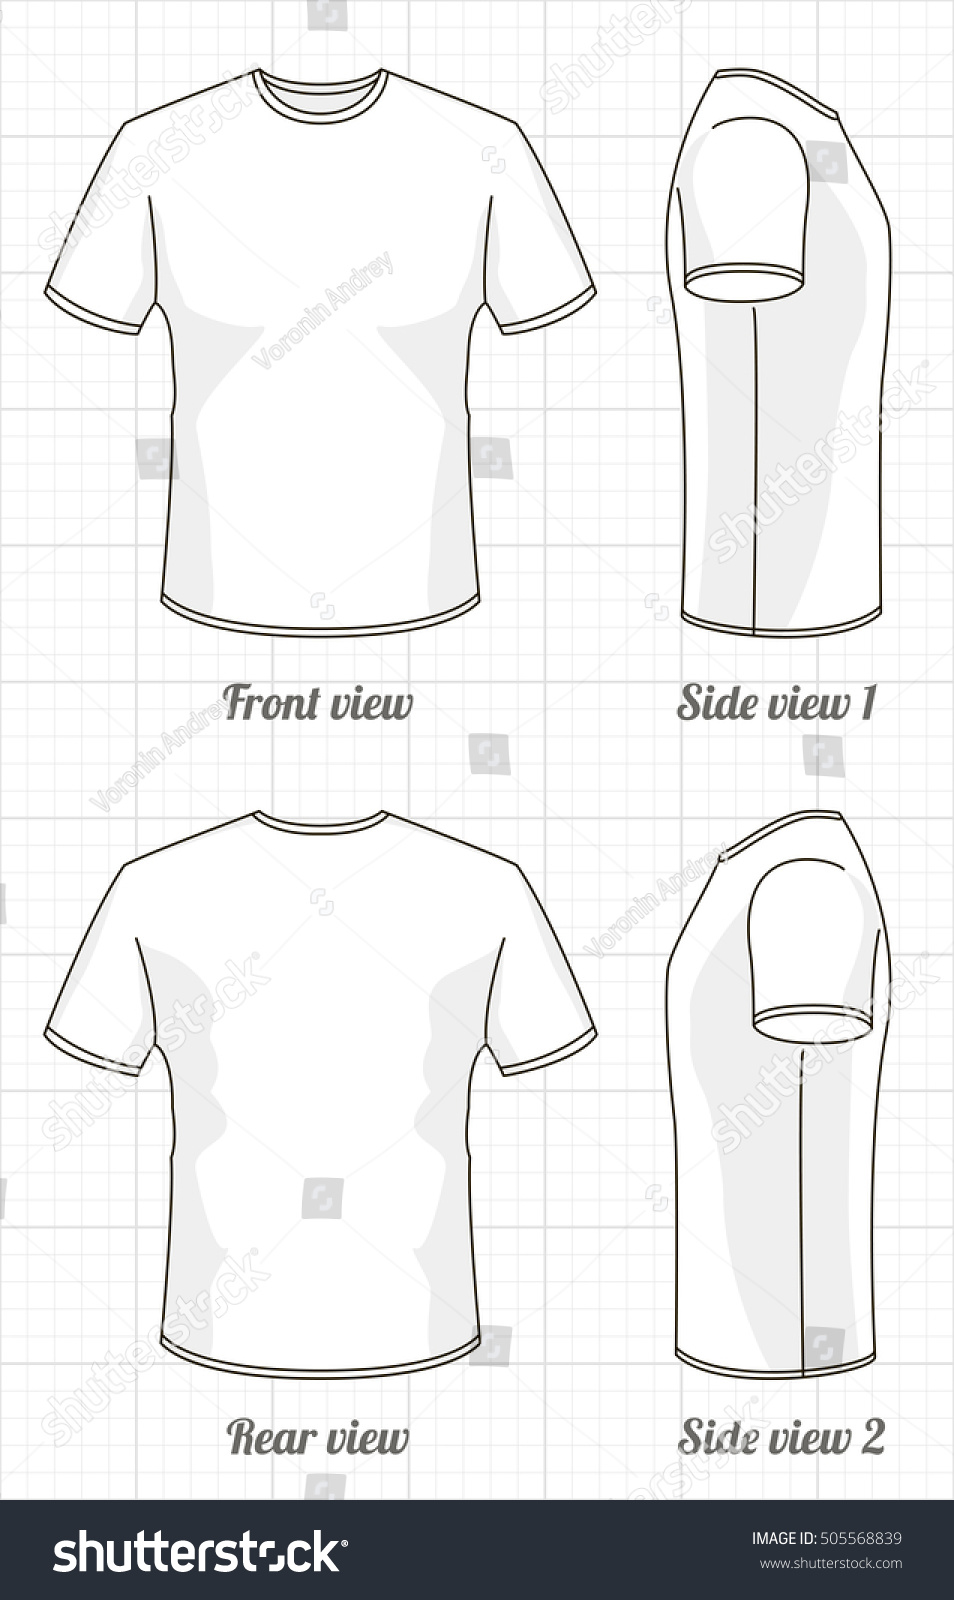 White t shirt eps - T Shirt Template Set Front Side Back View Vector Eps 8